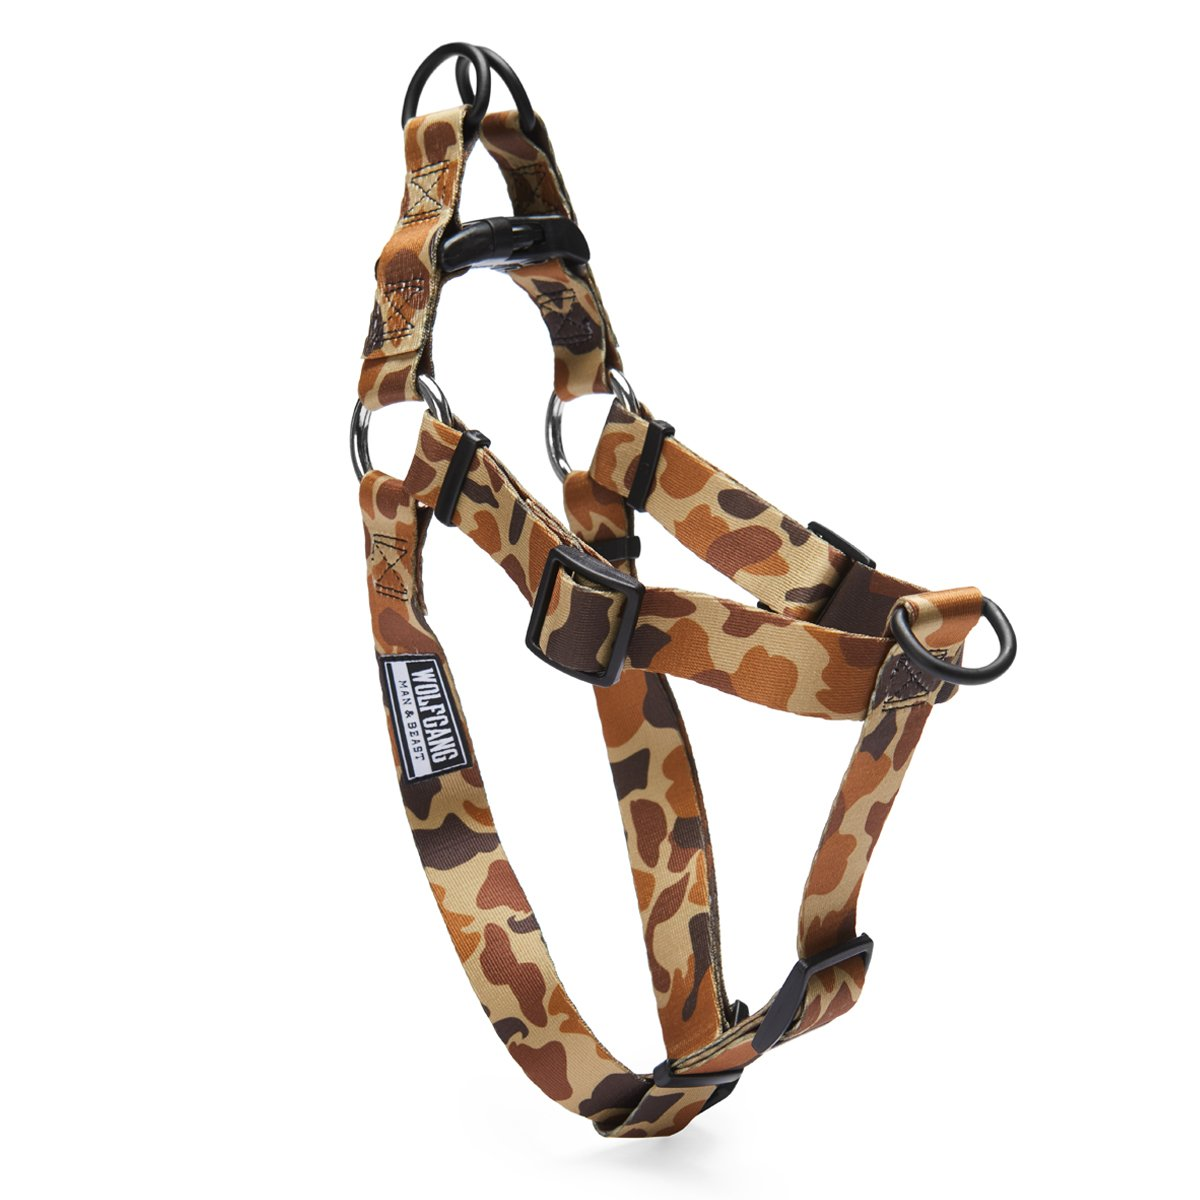 Wolfgang DuckBlind Comfort Dog Harness